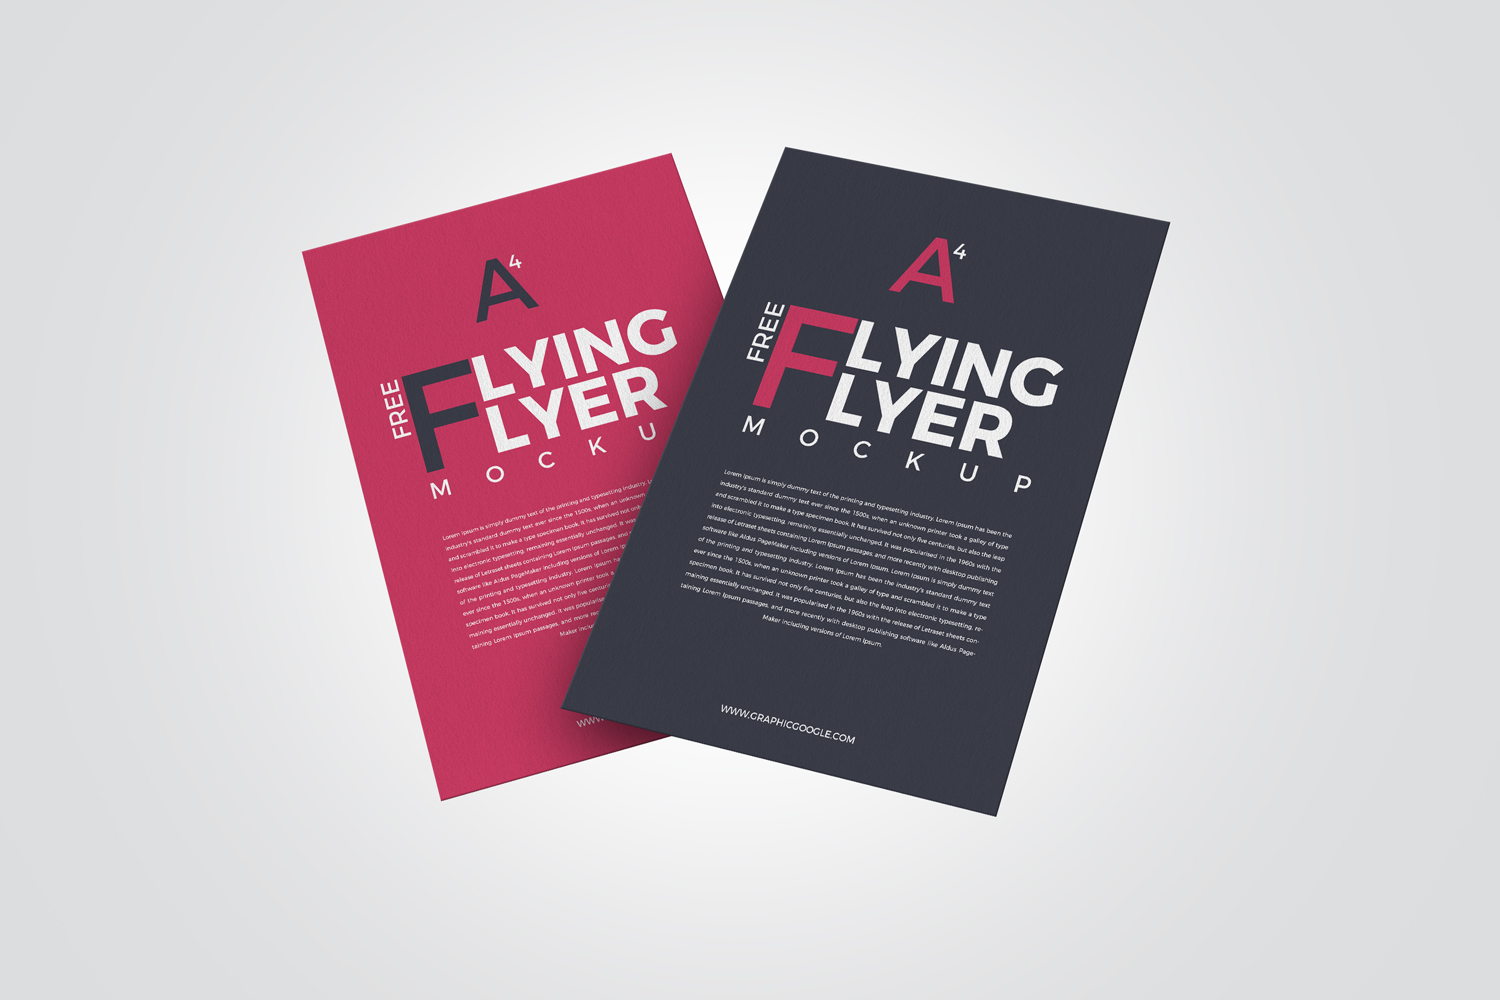 free 2 flying flyer mockup graphic google tasty graphic designs